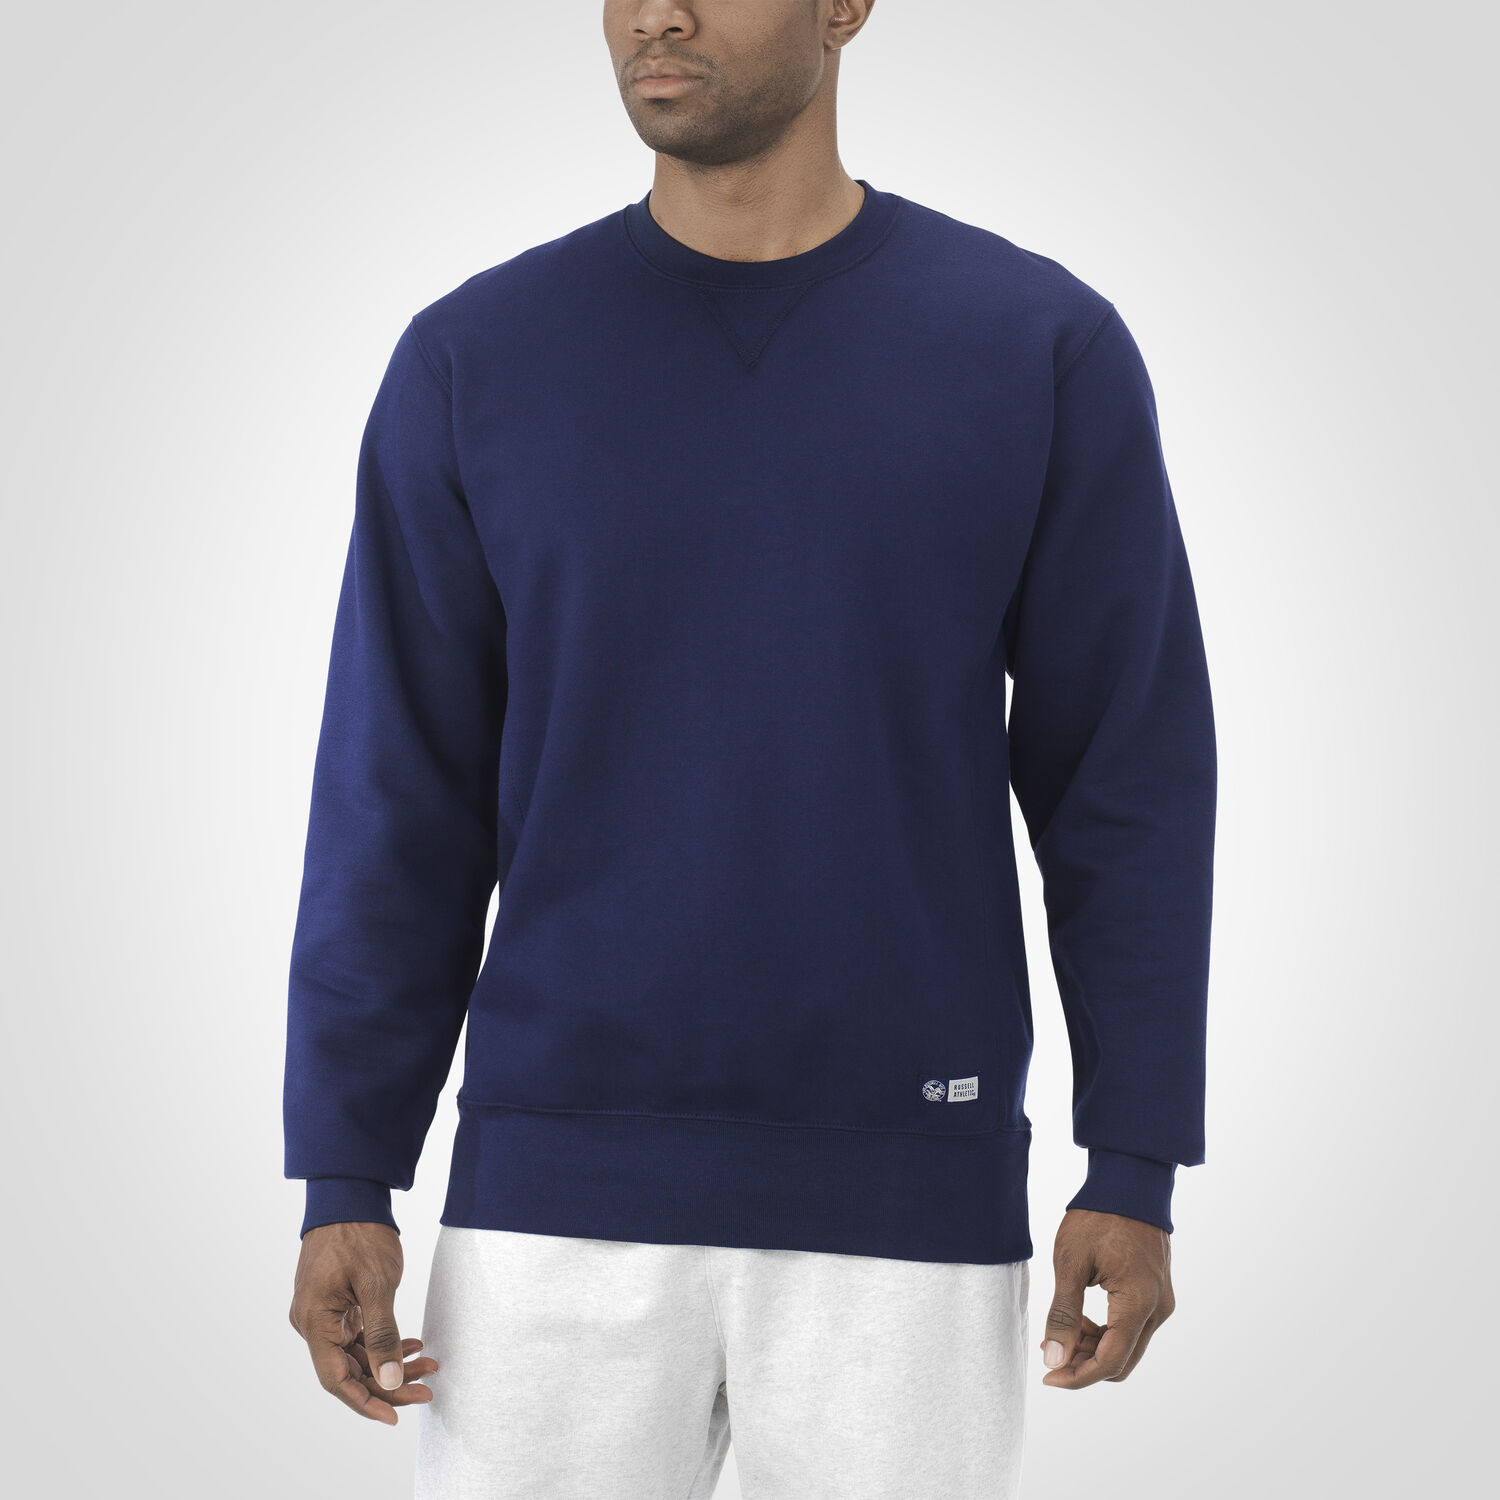 Mens Fleece Hoodies, Sweatshirts & Pullovers | Russell Athletic